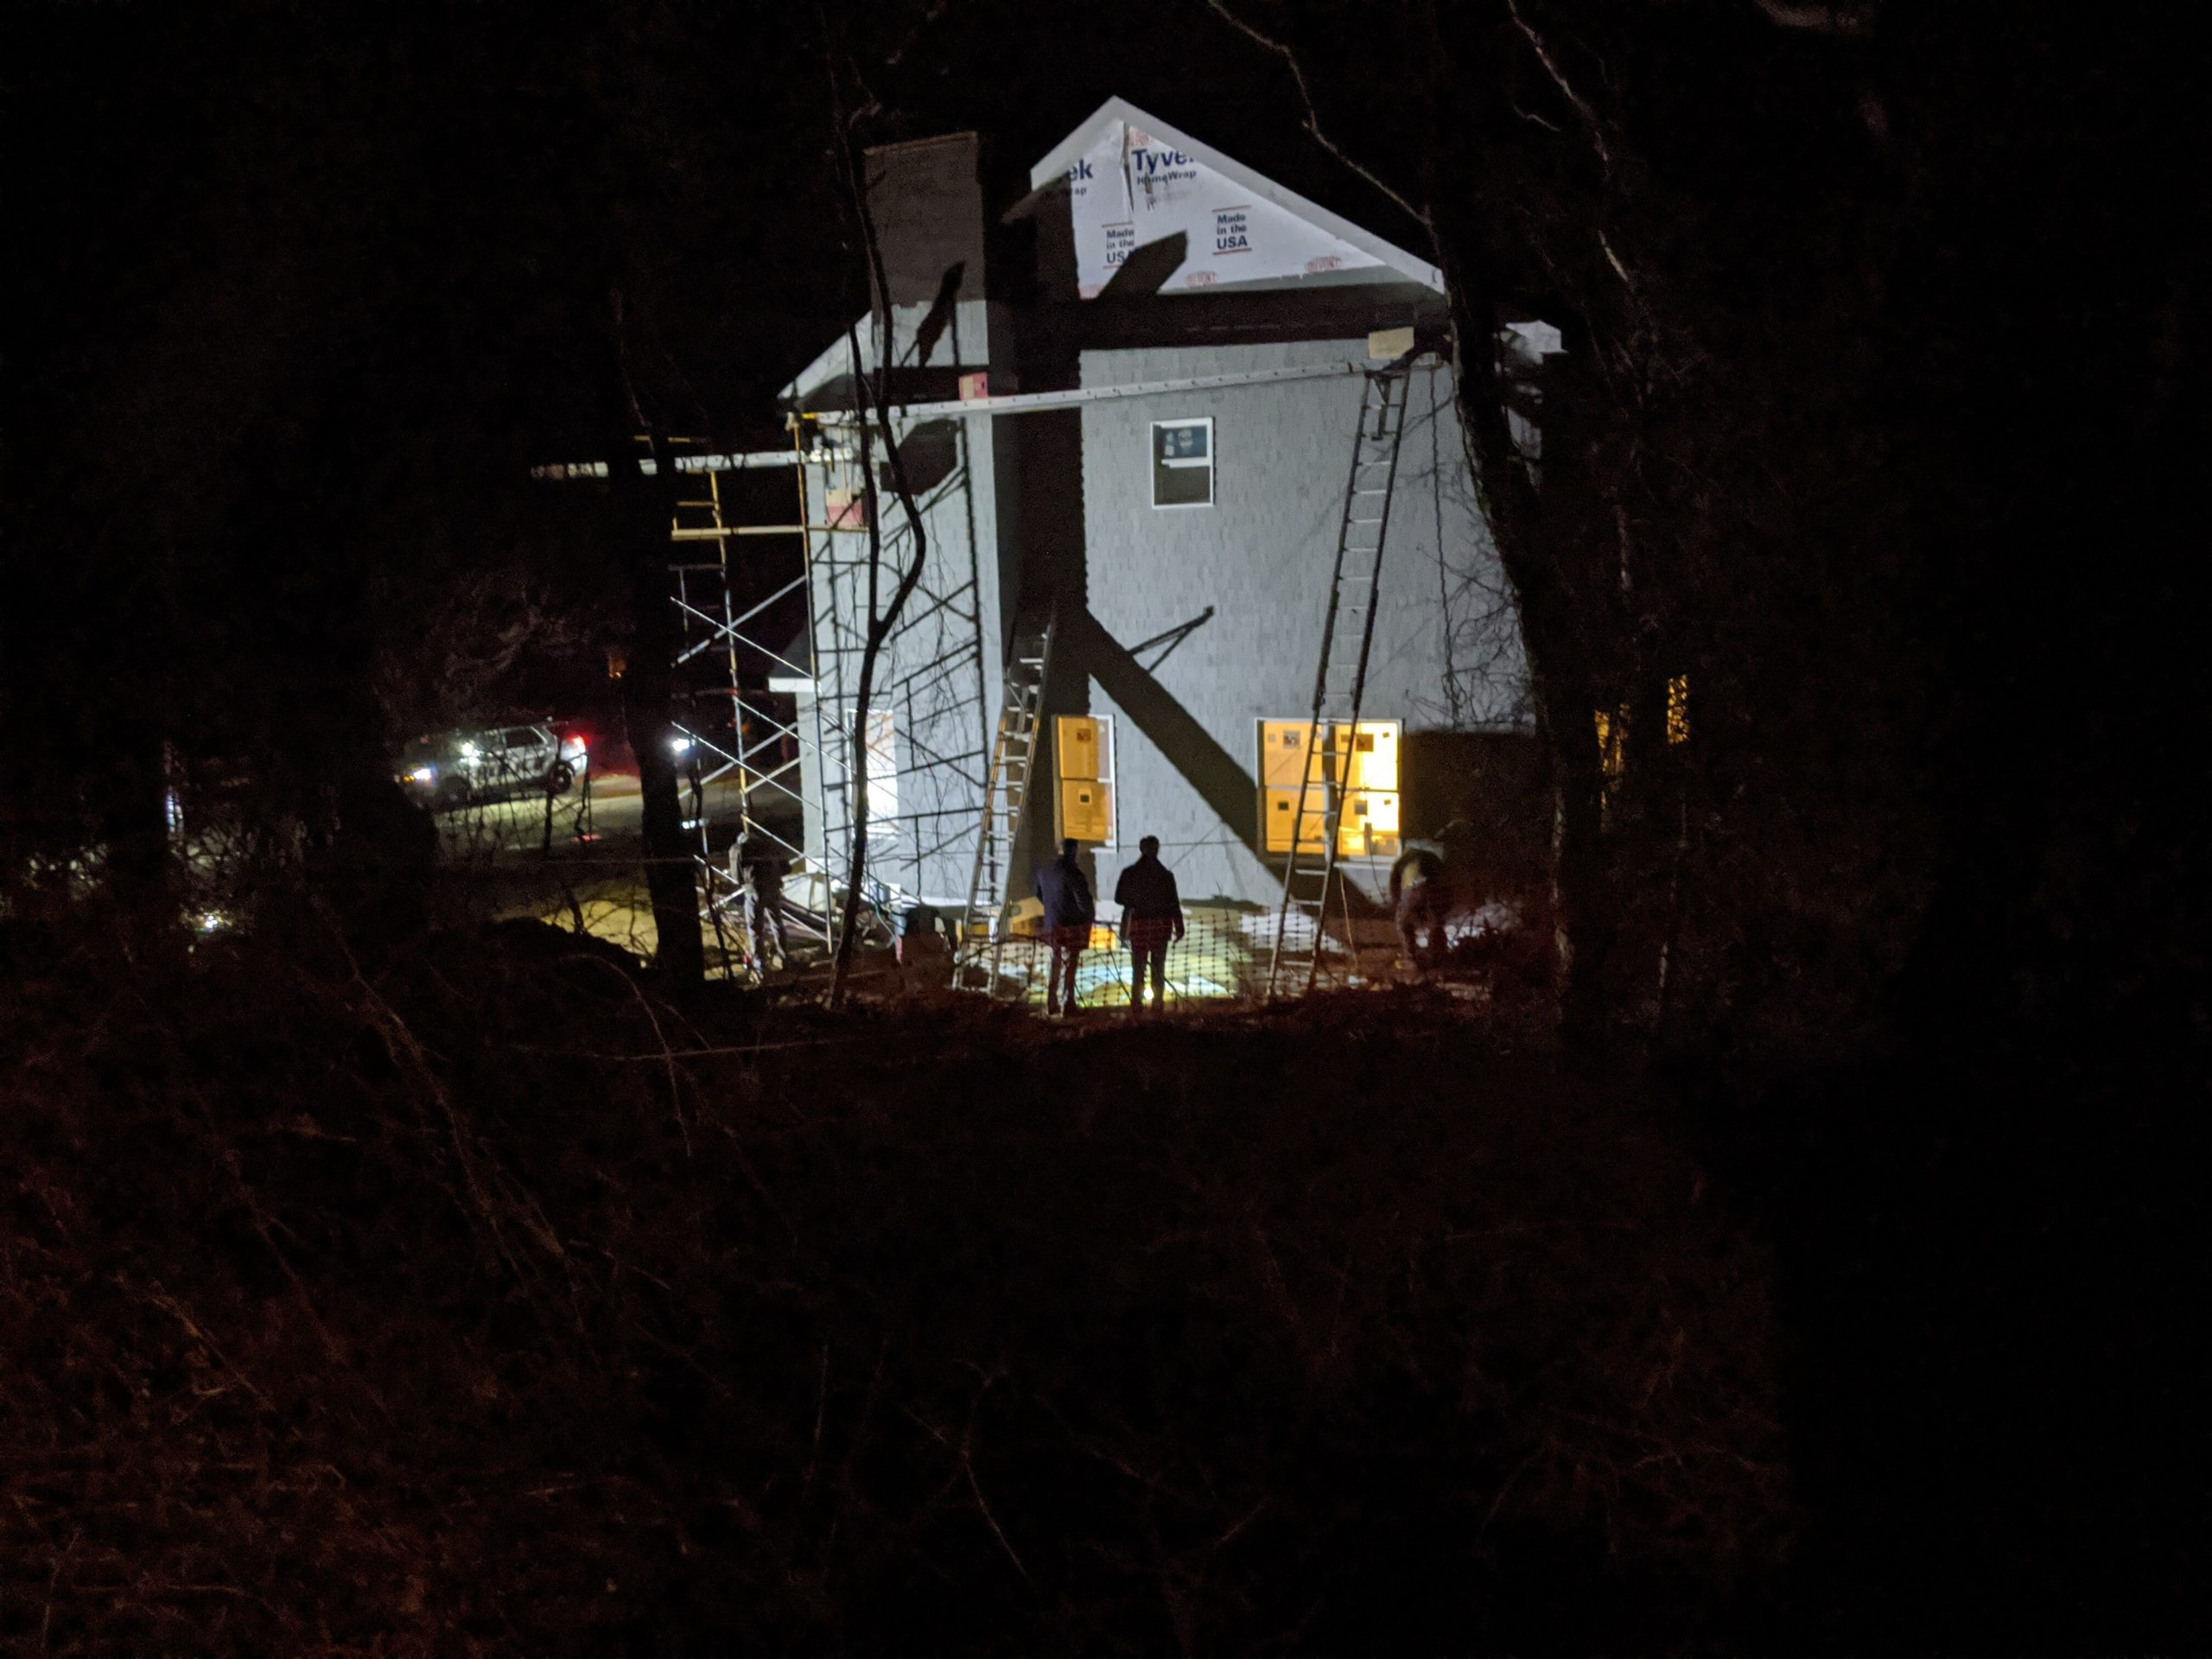 OSHA officials Investigate a house under construction in Montauk after a fatal accident on Friday.